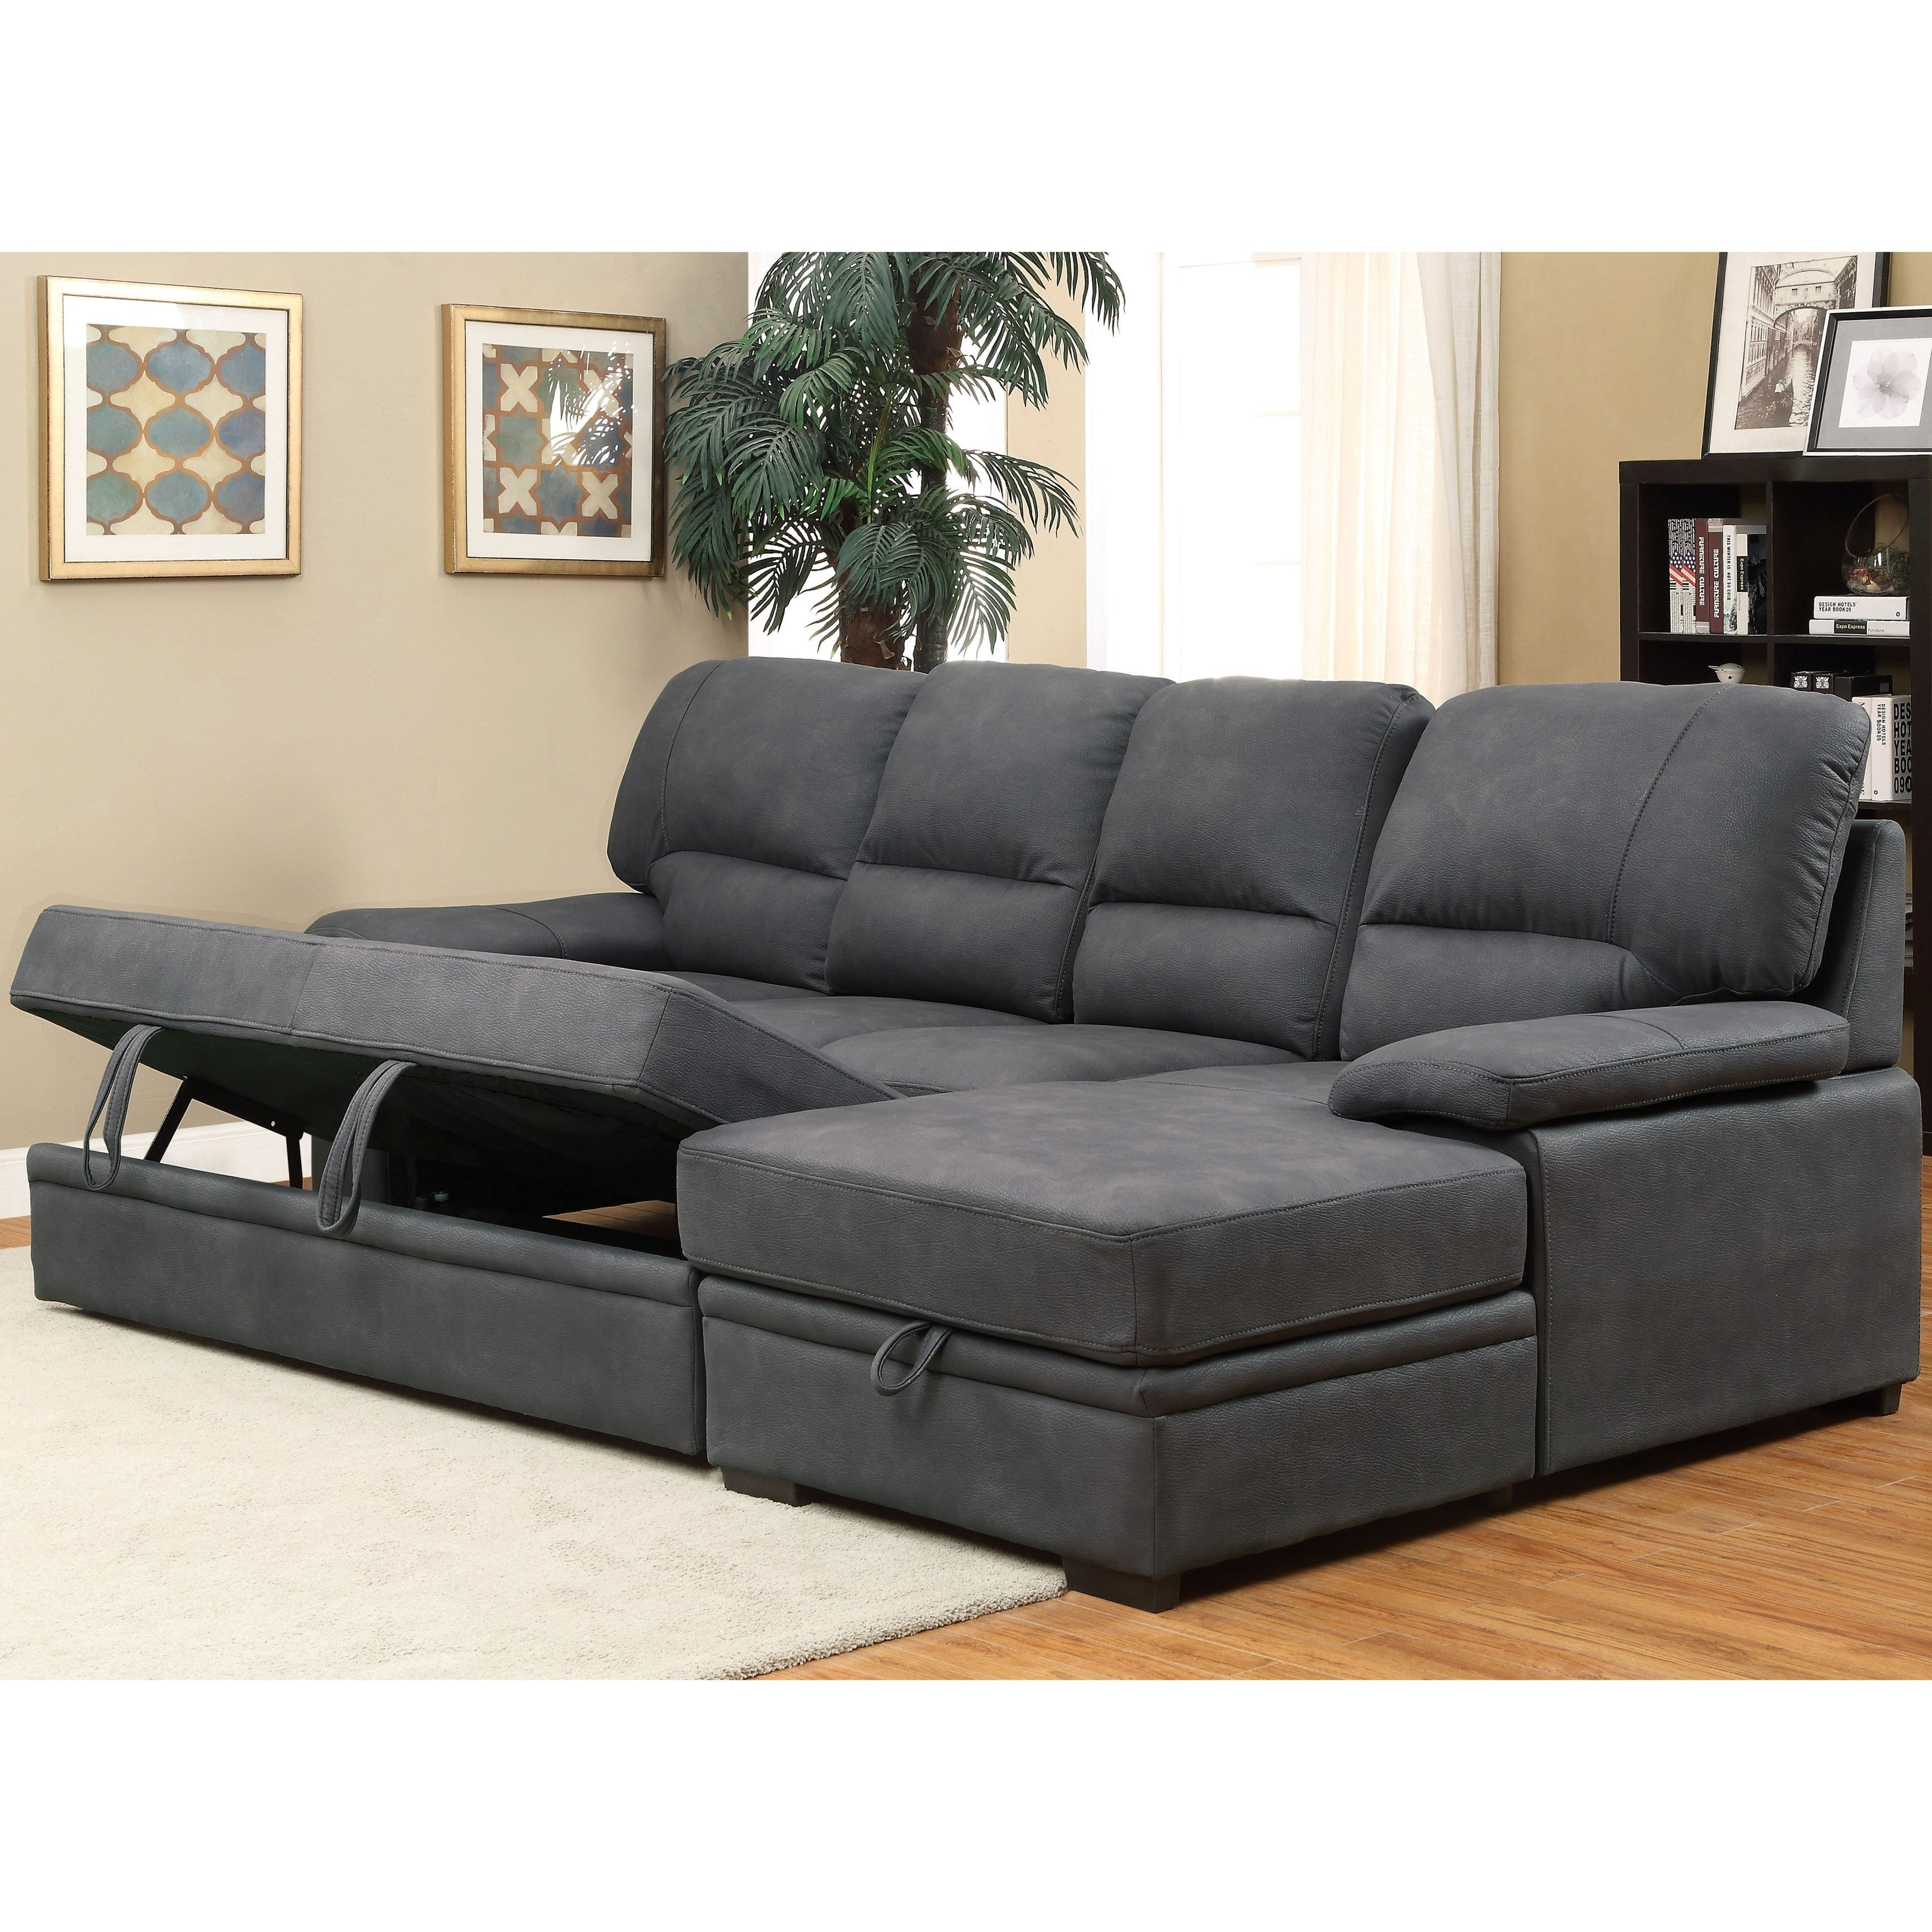 Sleeper Sectional | Two Piece Casual Sleeper Sectional In Cream In Lucy Dark Grey 2 Piece Sleeper Sectionals With Laf Chaise (View 22 of 25)